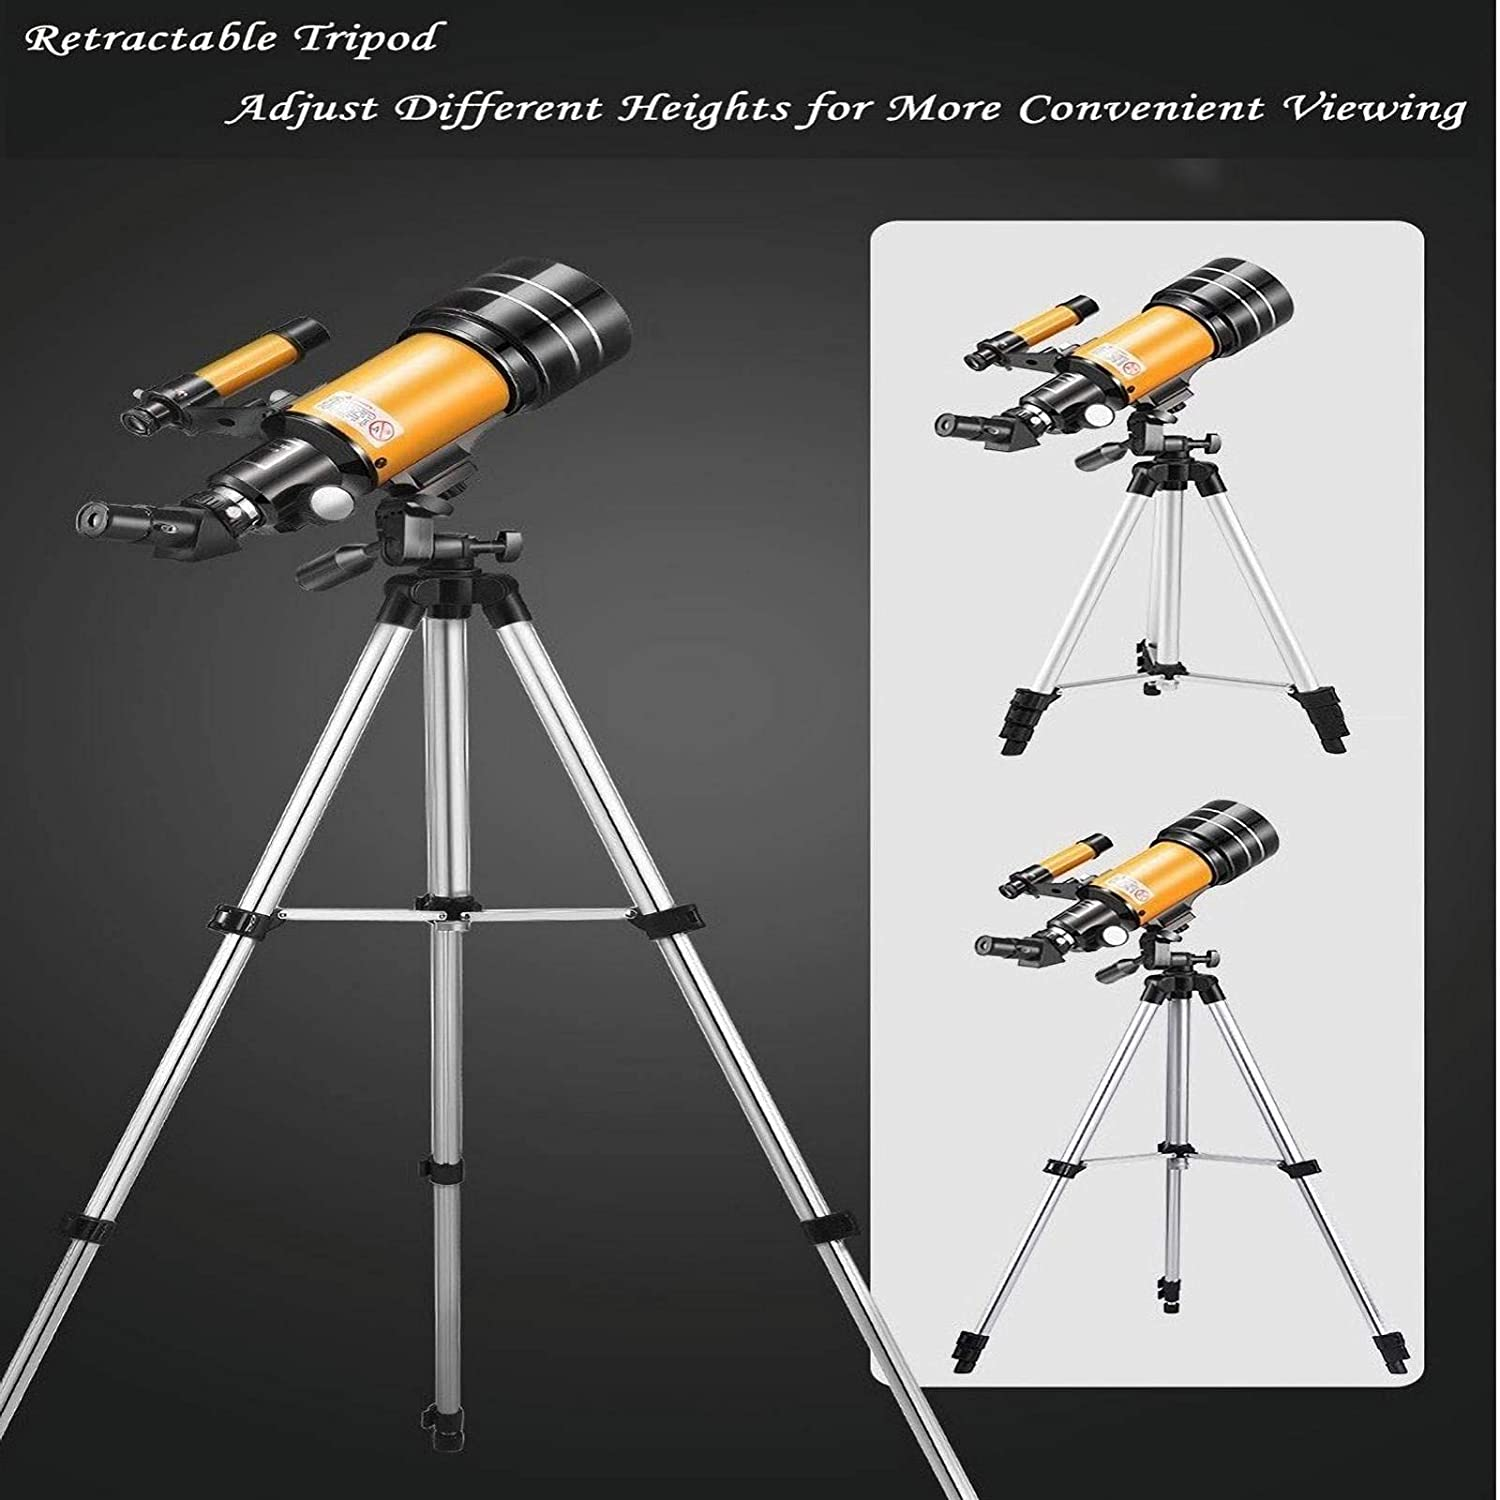 70mm Aperture 300mm Focal Length Telescope for Adults Carry Bag Kids BydZiMu Telescope for Astronomy Beginners with Adjustable 51 Inch Tripod Include Phone Adapter